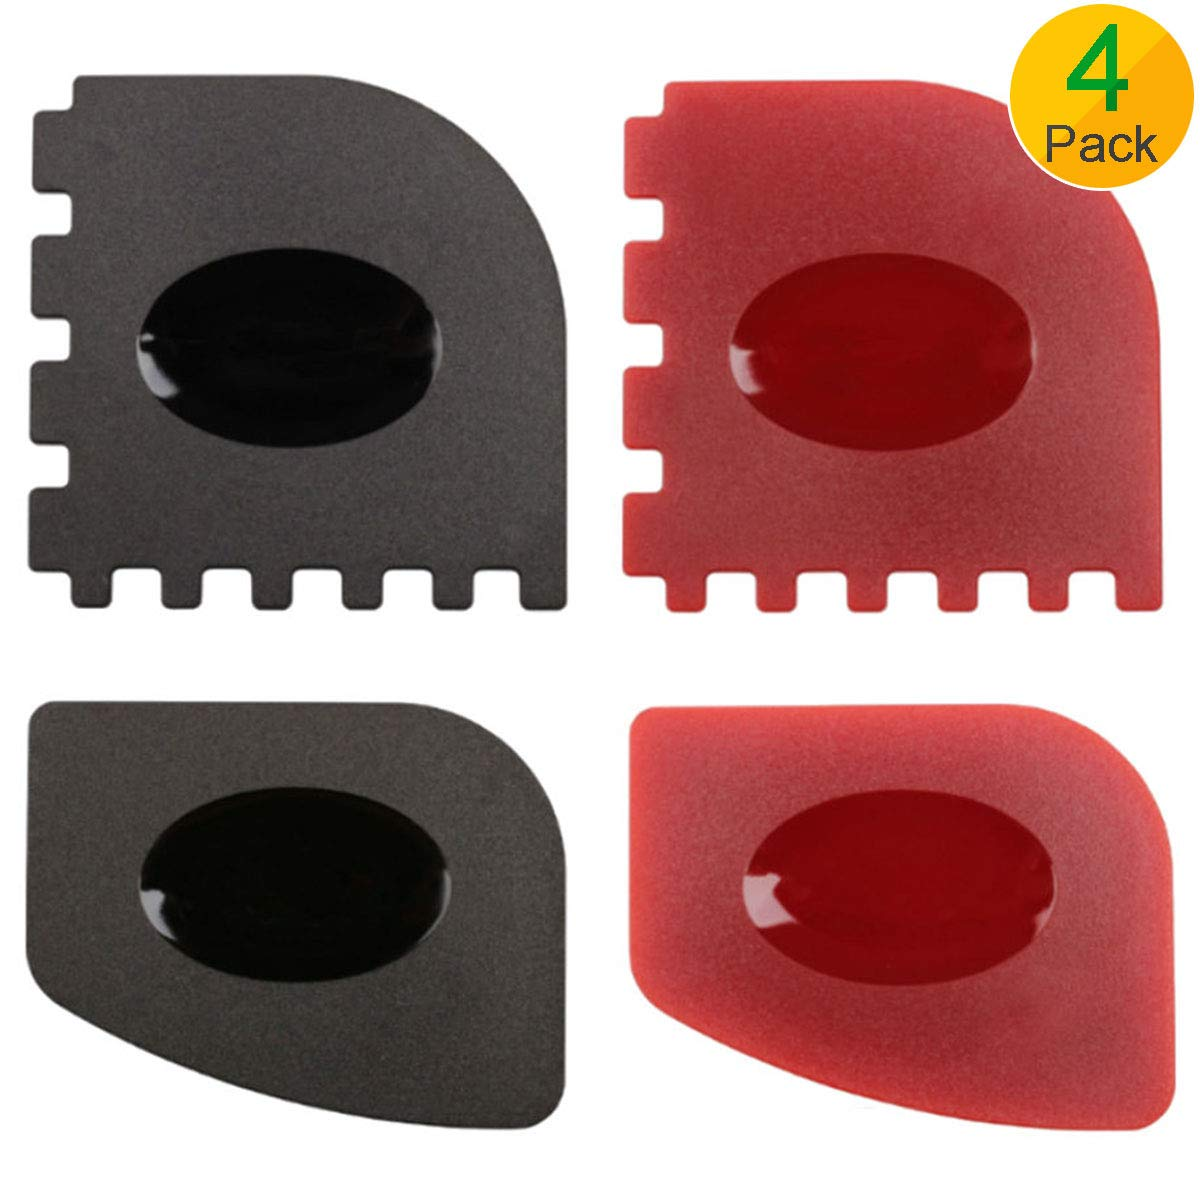 Pan Scrapers, 4 Pack Durable Pan Scrapers Grill Pan Scraper Cleaner Tools for Cast Iron Pans Skillets, Cookware Baking Grill Pans (Black, Red)